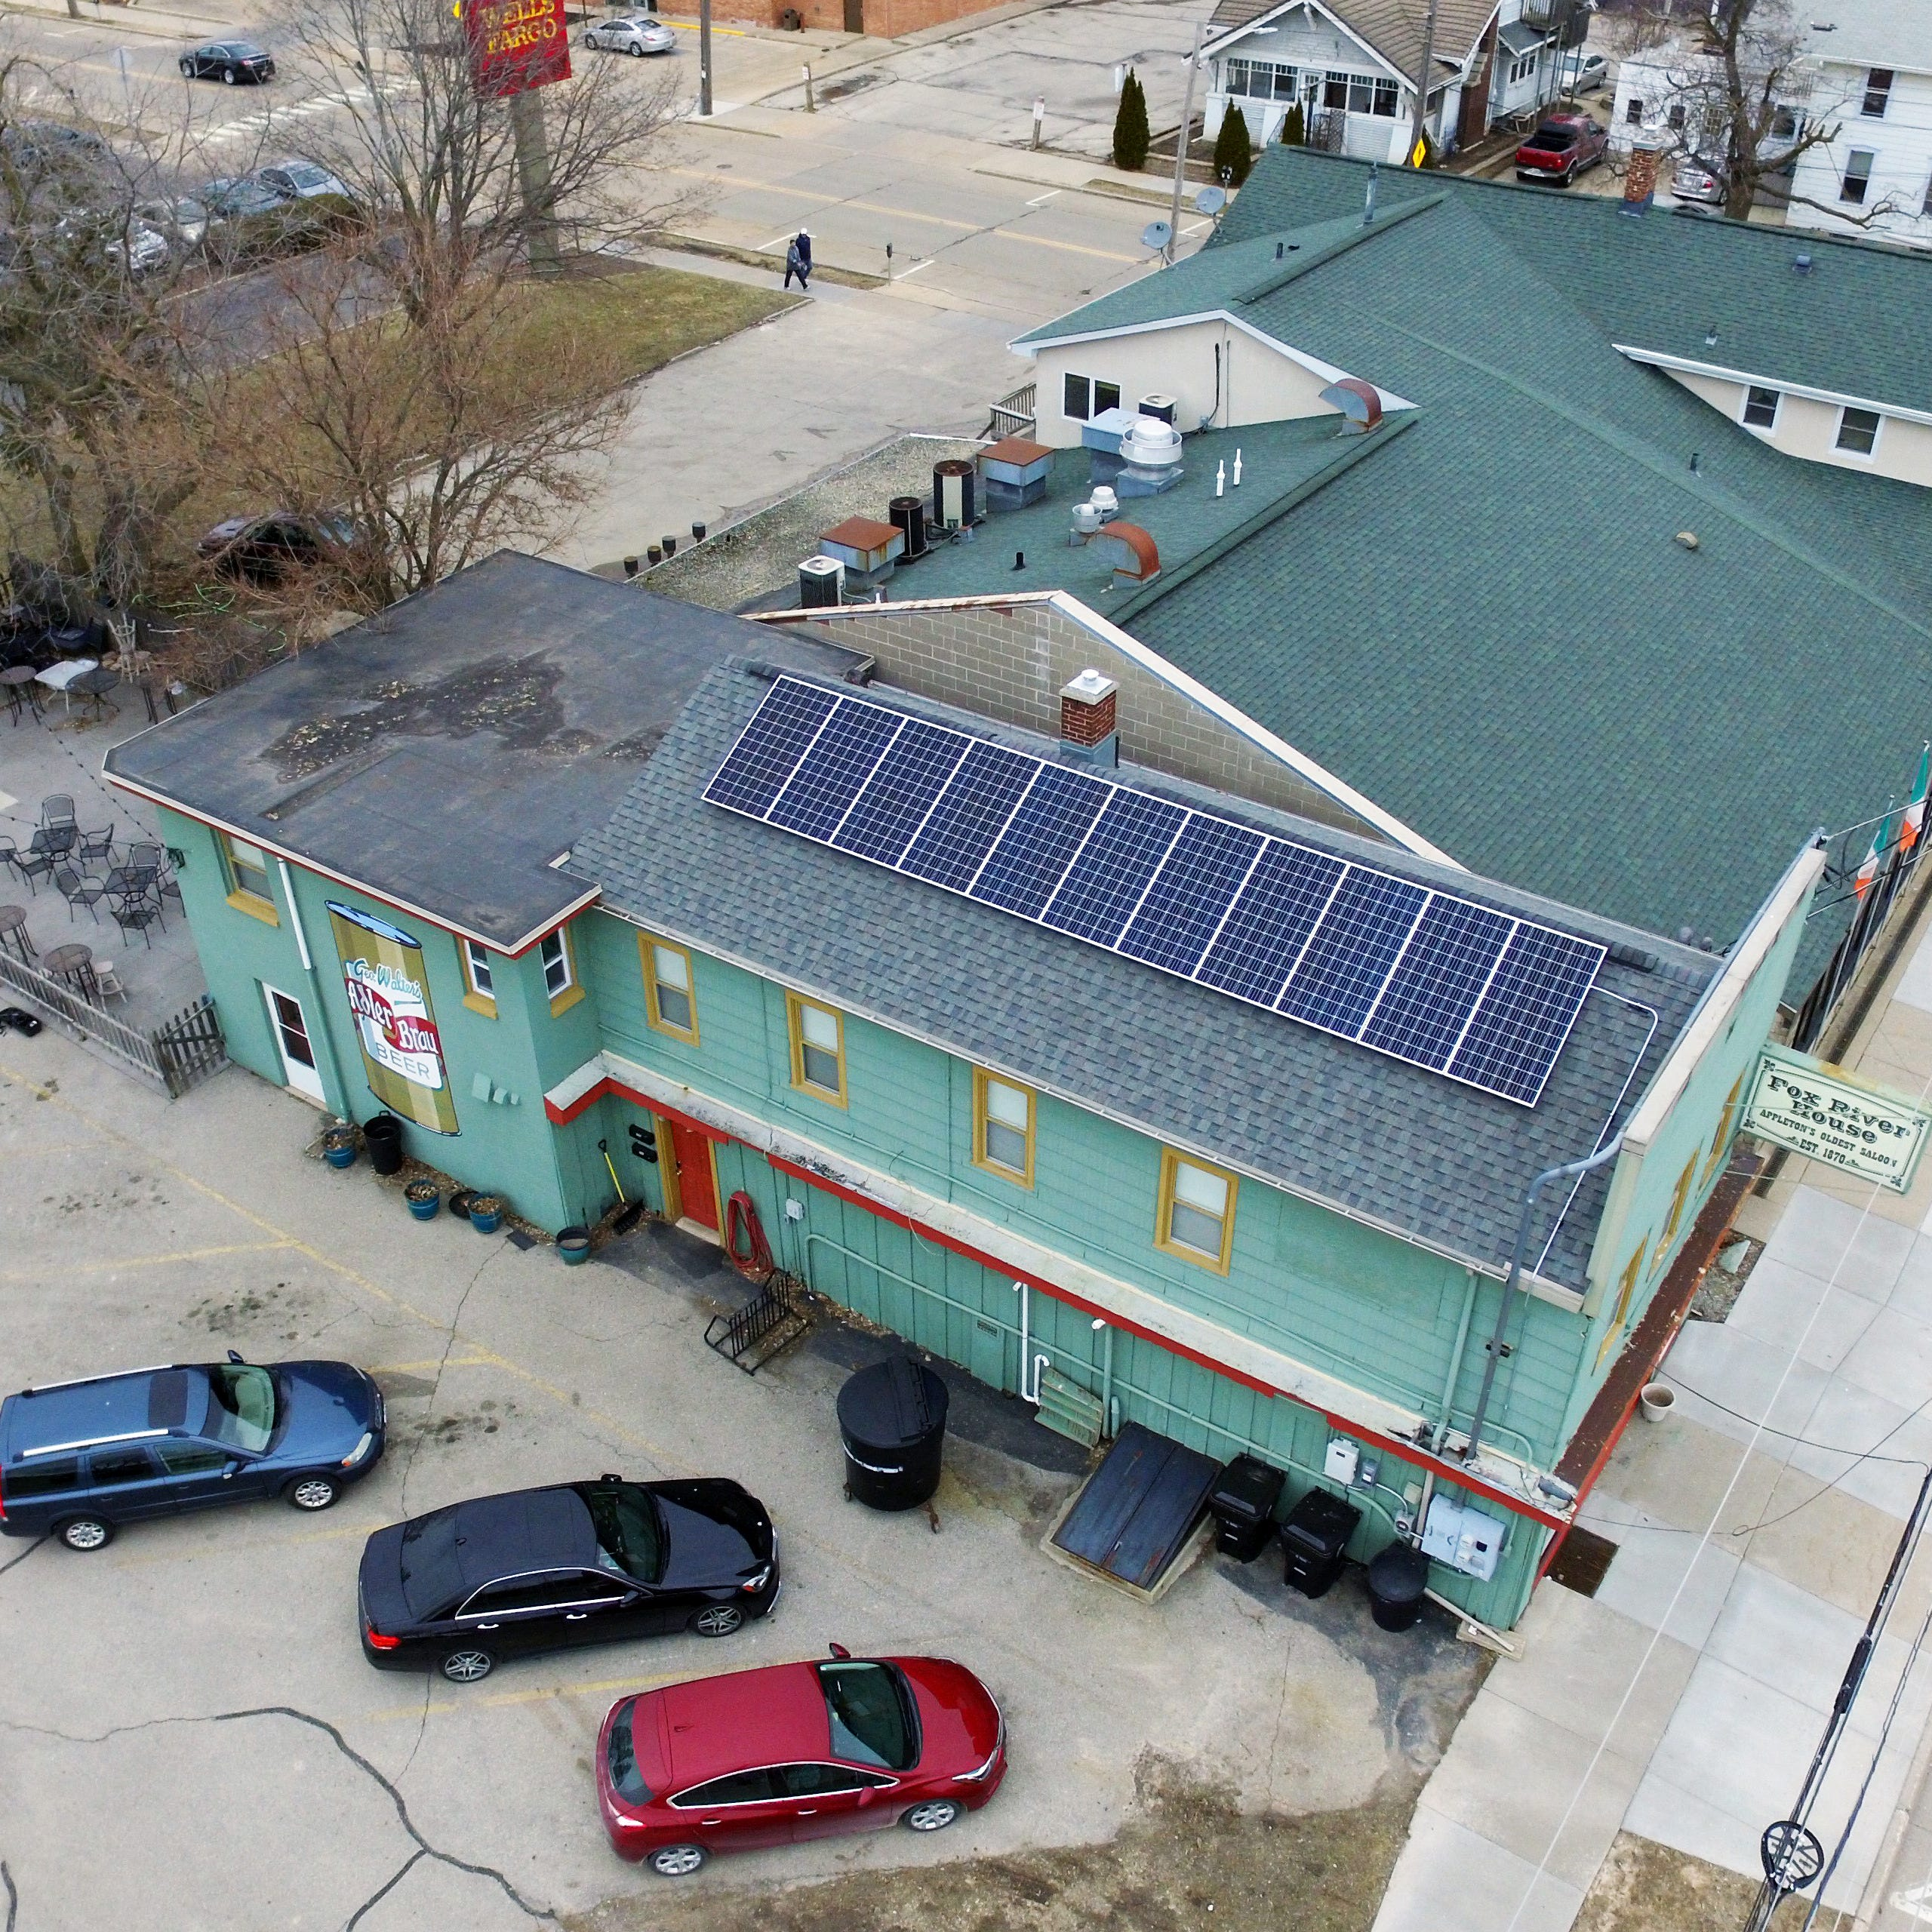 Sunny disposition: Appleton's oldest bar is now partly powered by solar panels